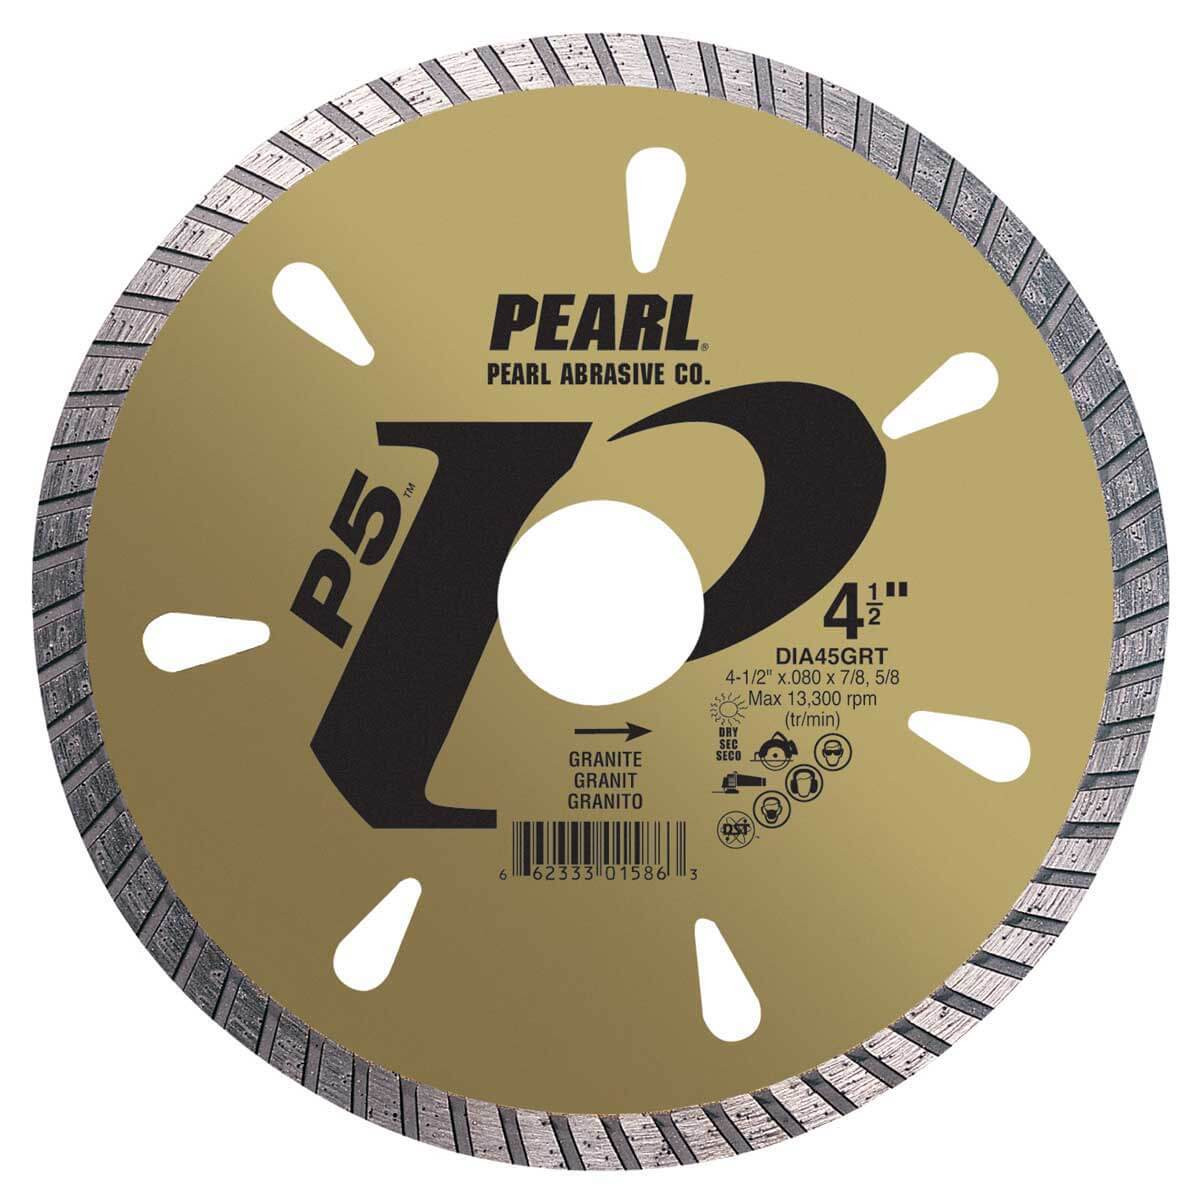 pearl grt 4 1/2in dry granite diamond blade